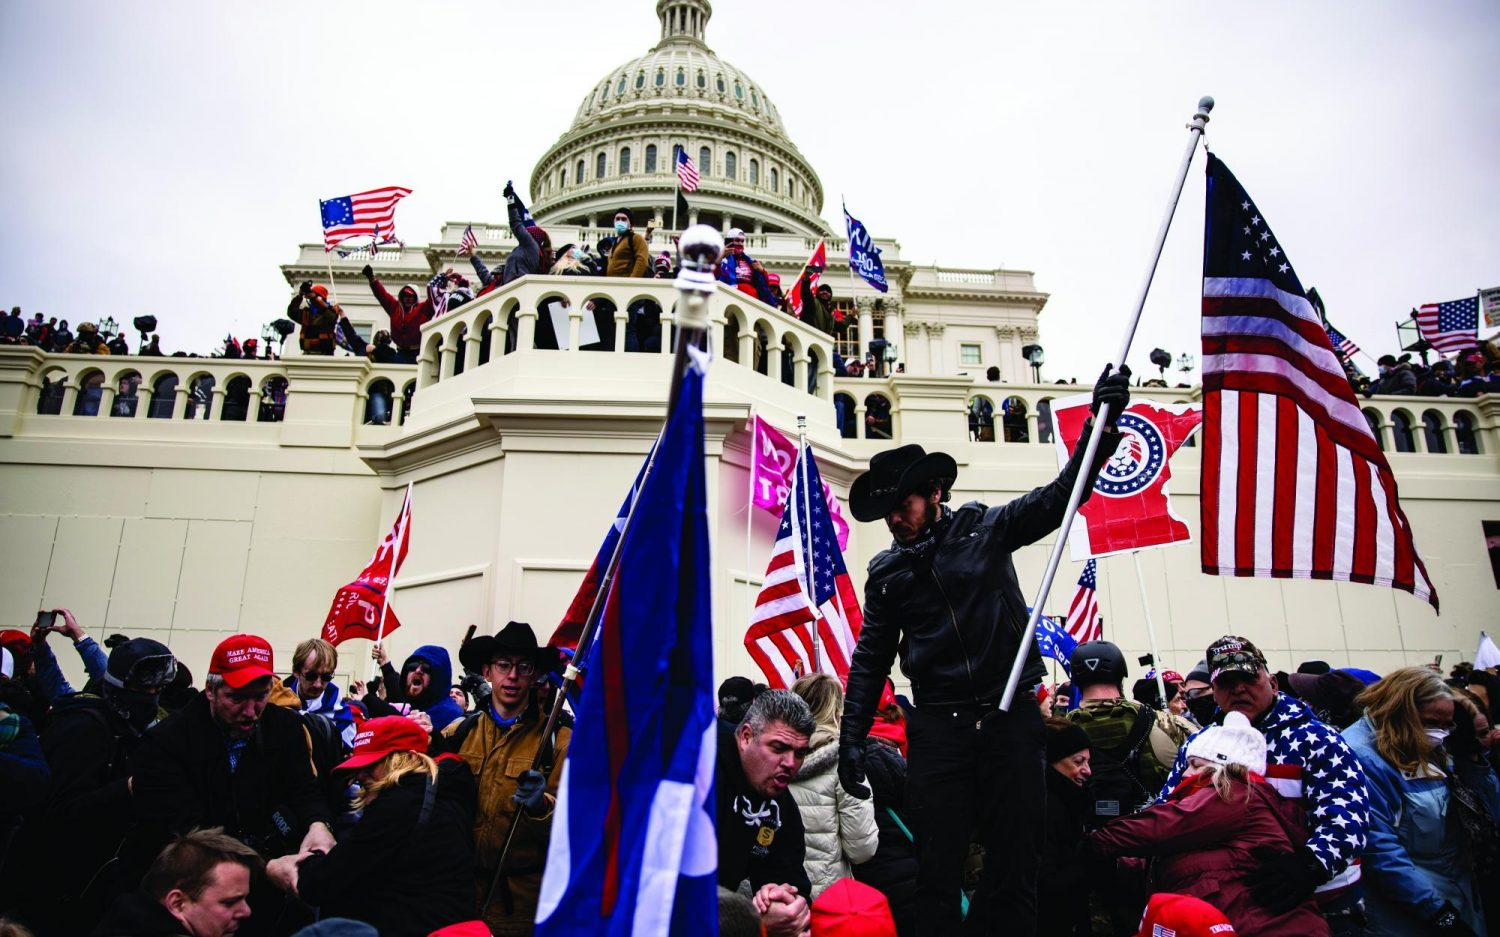 The day mobs overran the Capitol